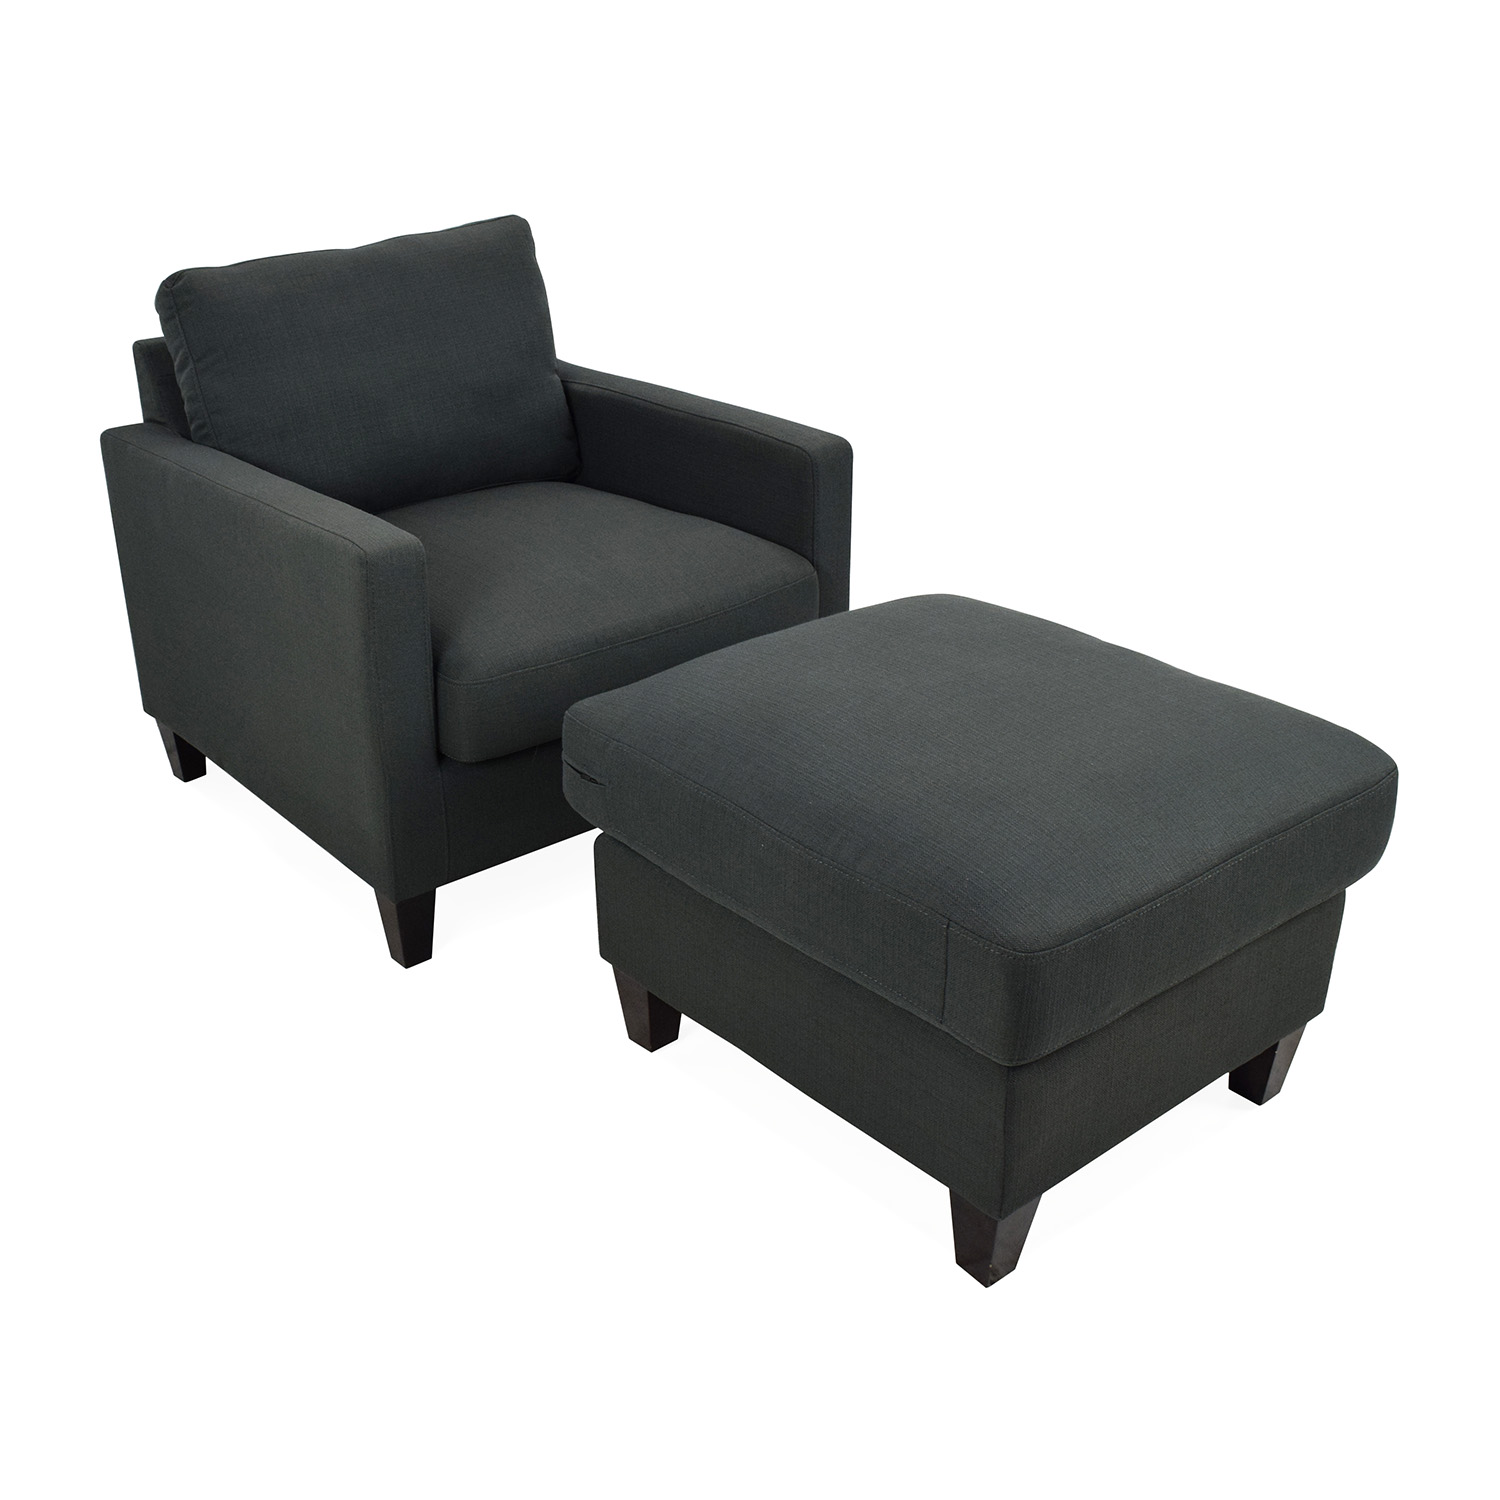 81 Off Dark Charcoal Blue Chair With Ottoman Chairs